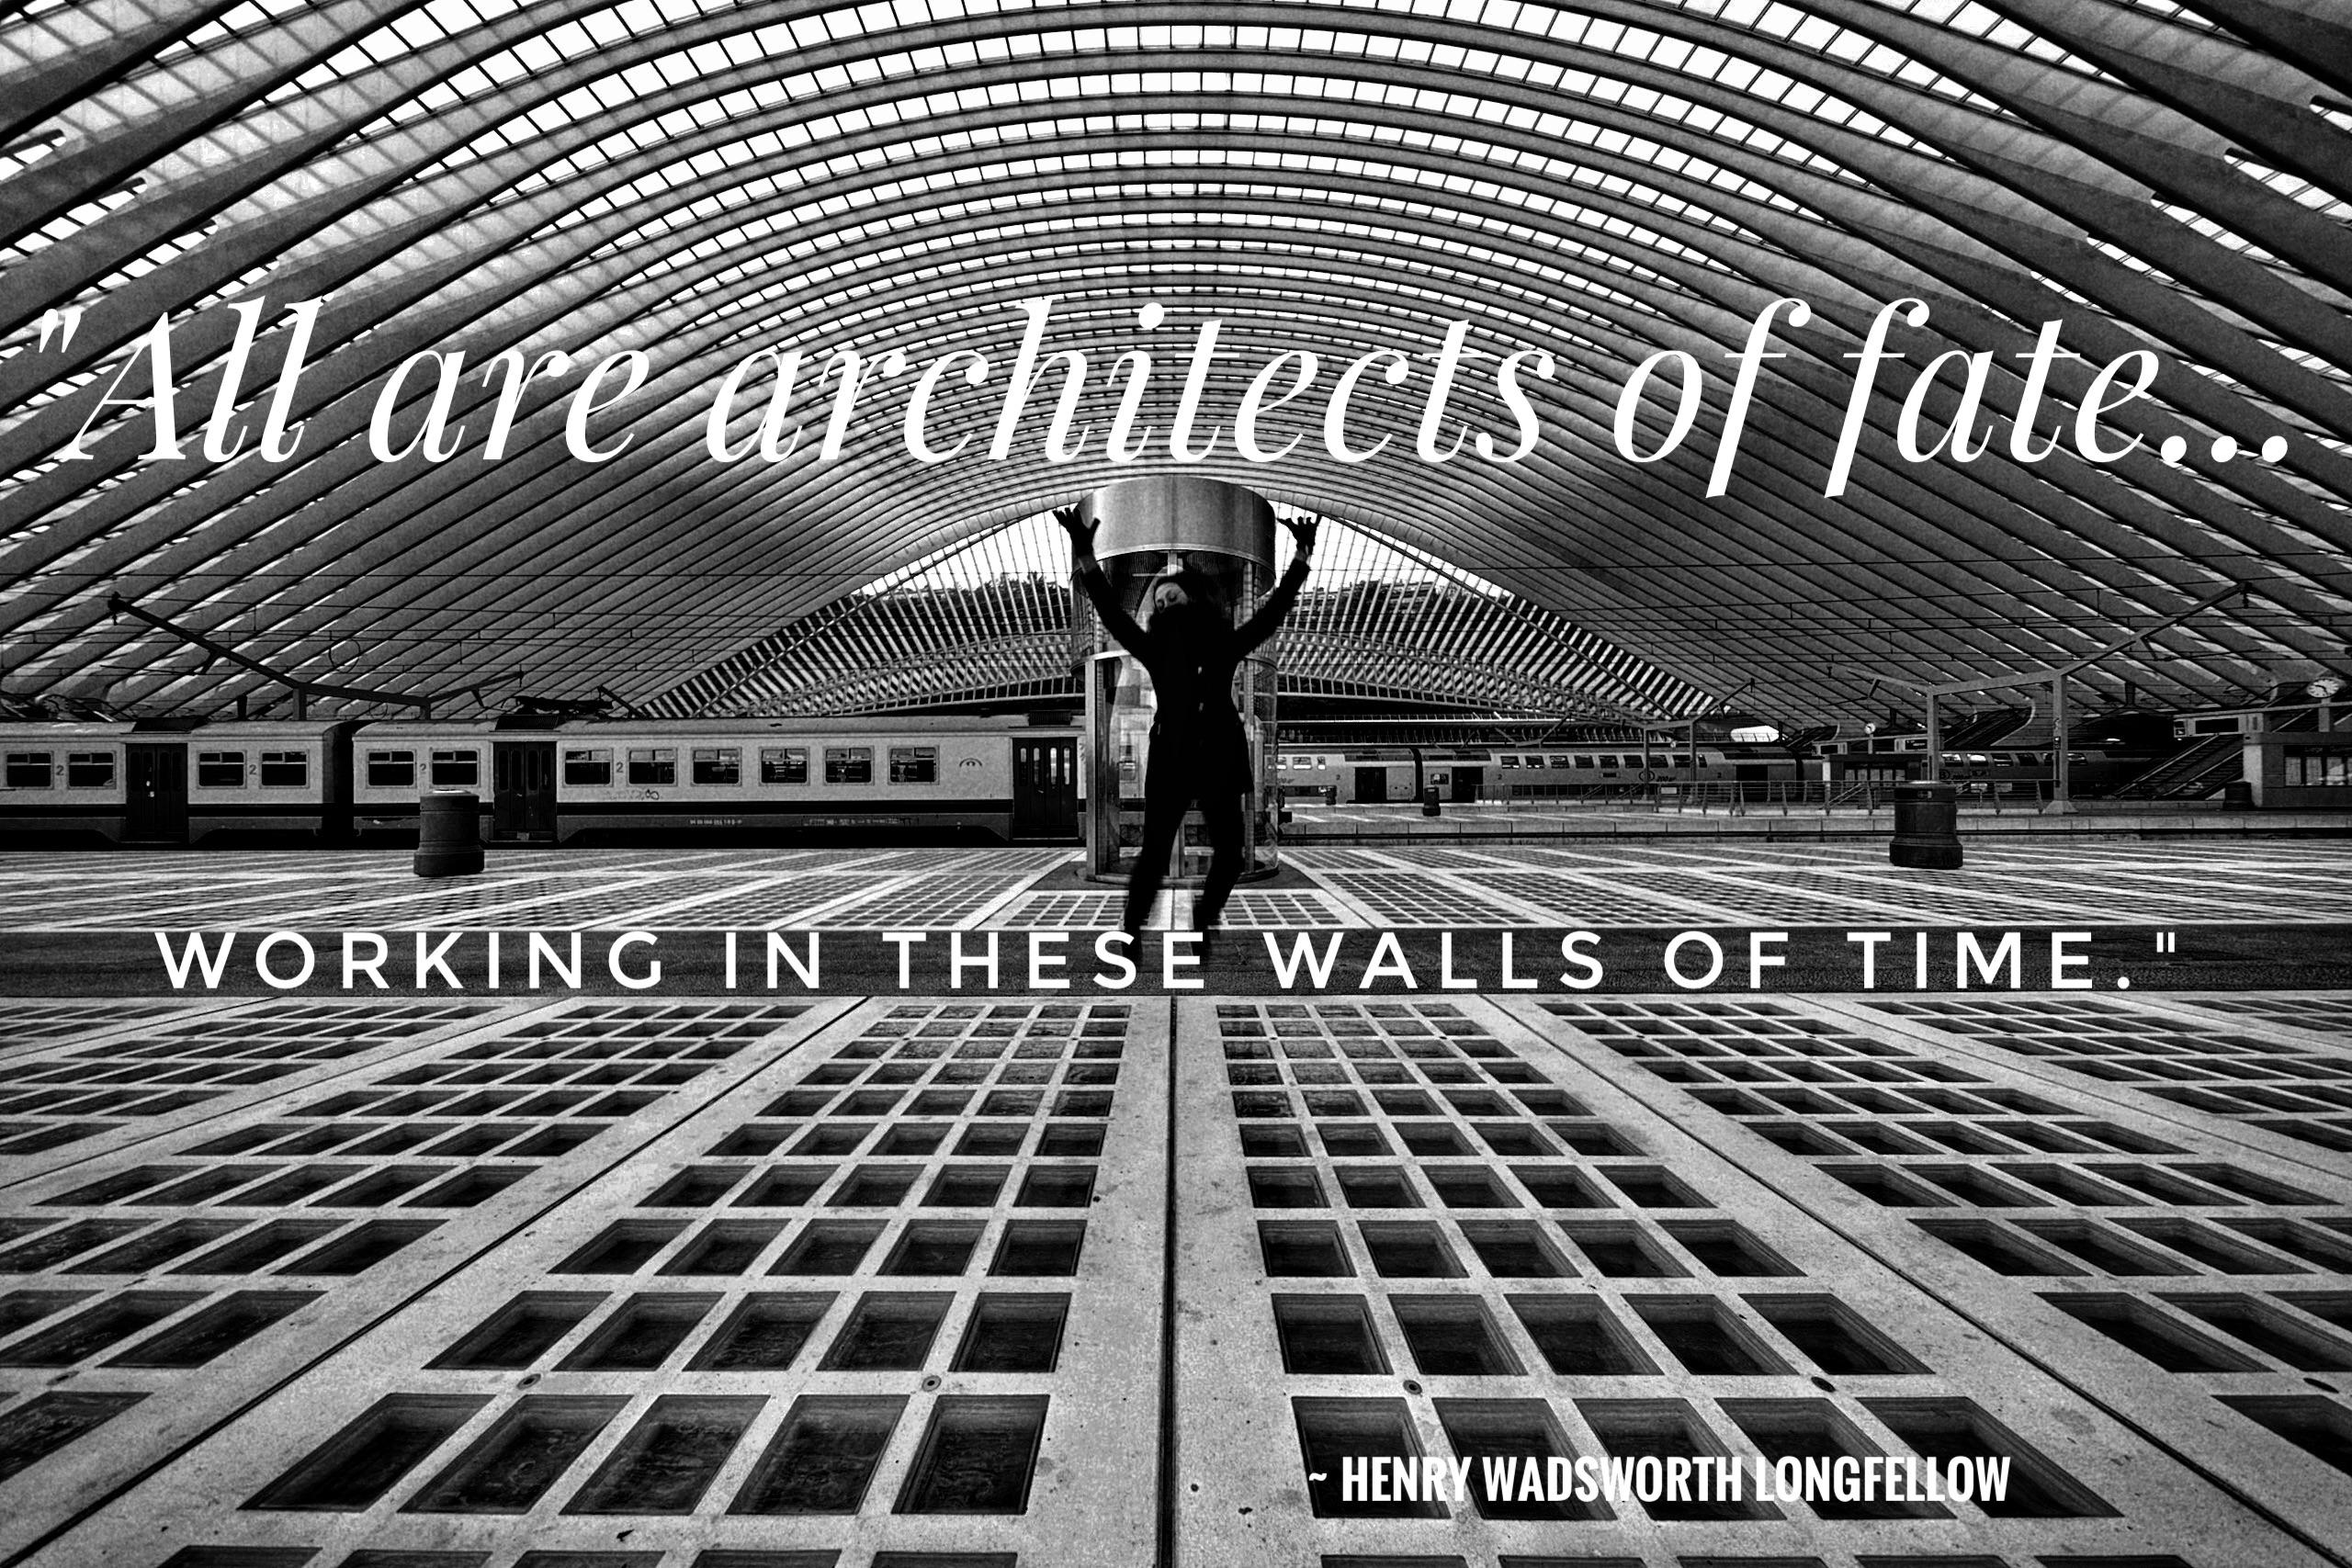 """All are architects of fate… working in these walls of time."" ~ Henry Wadsworth Longfellow [2560×1707][OC]"